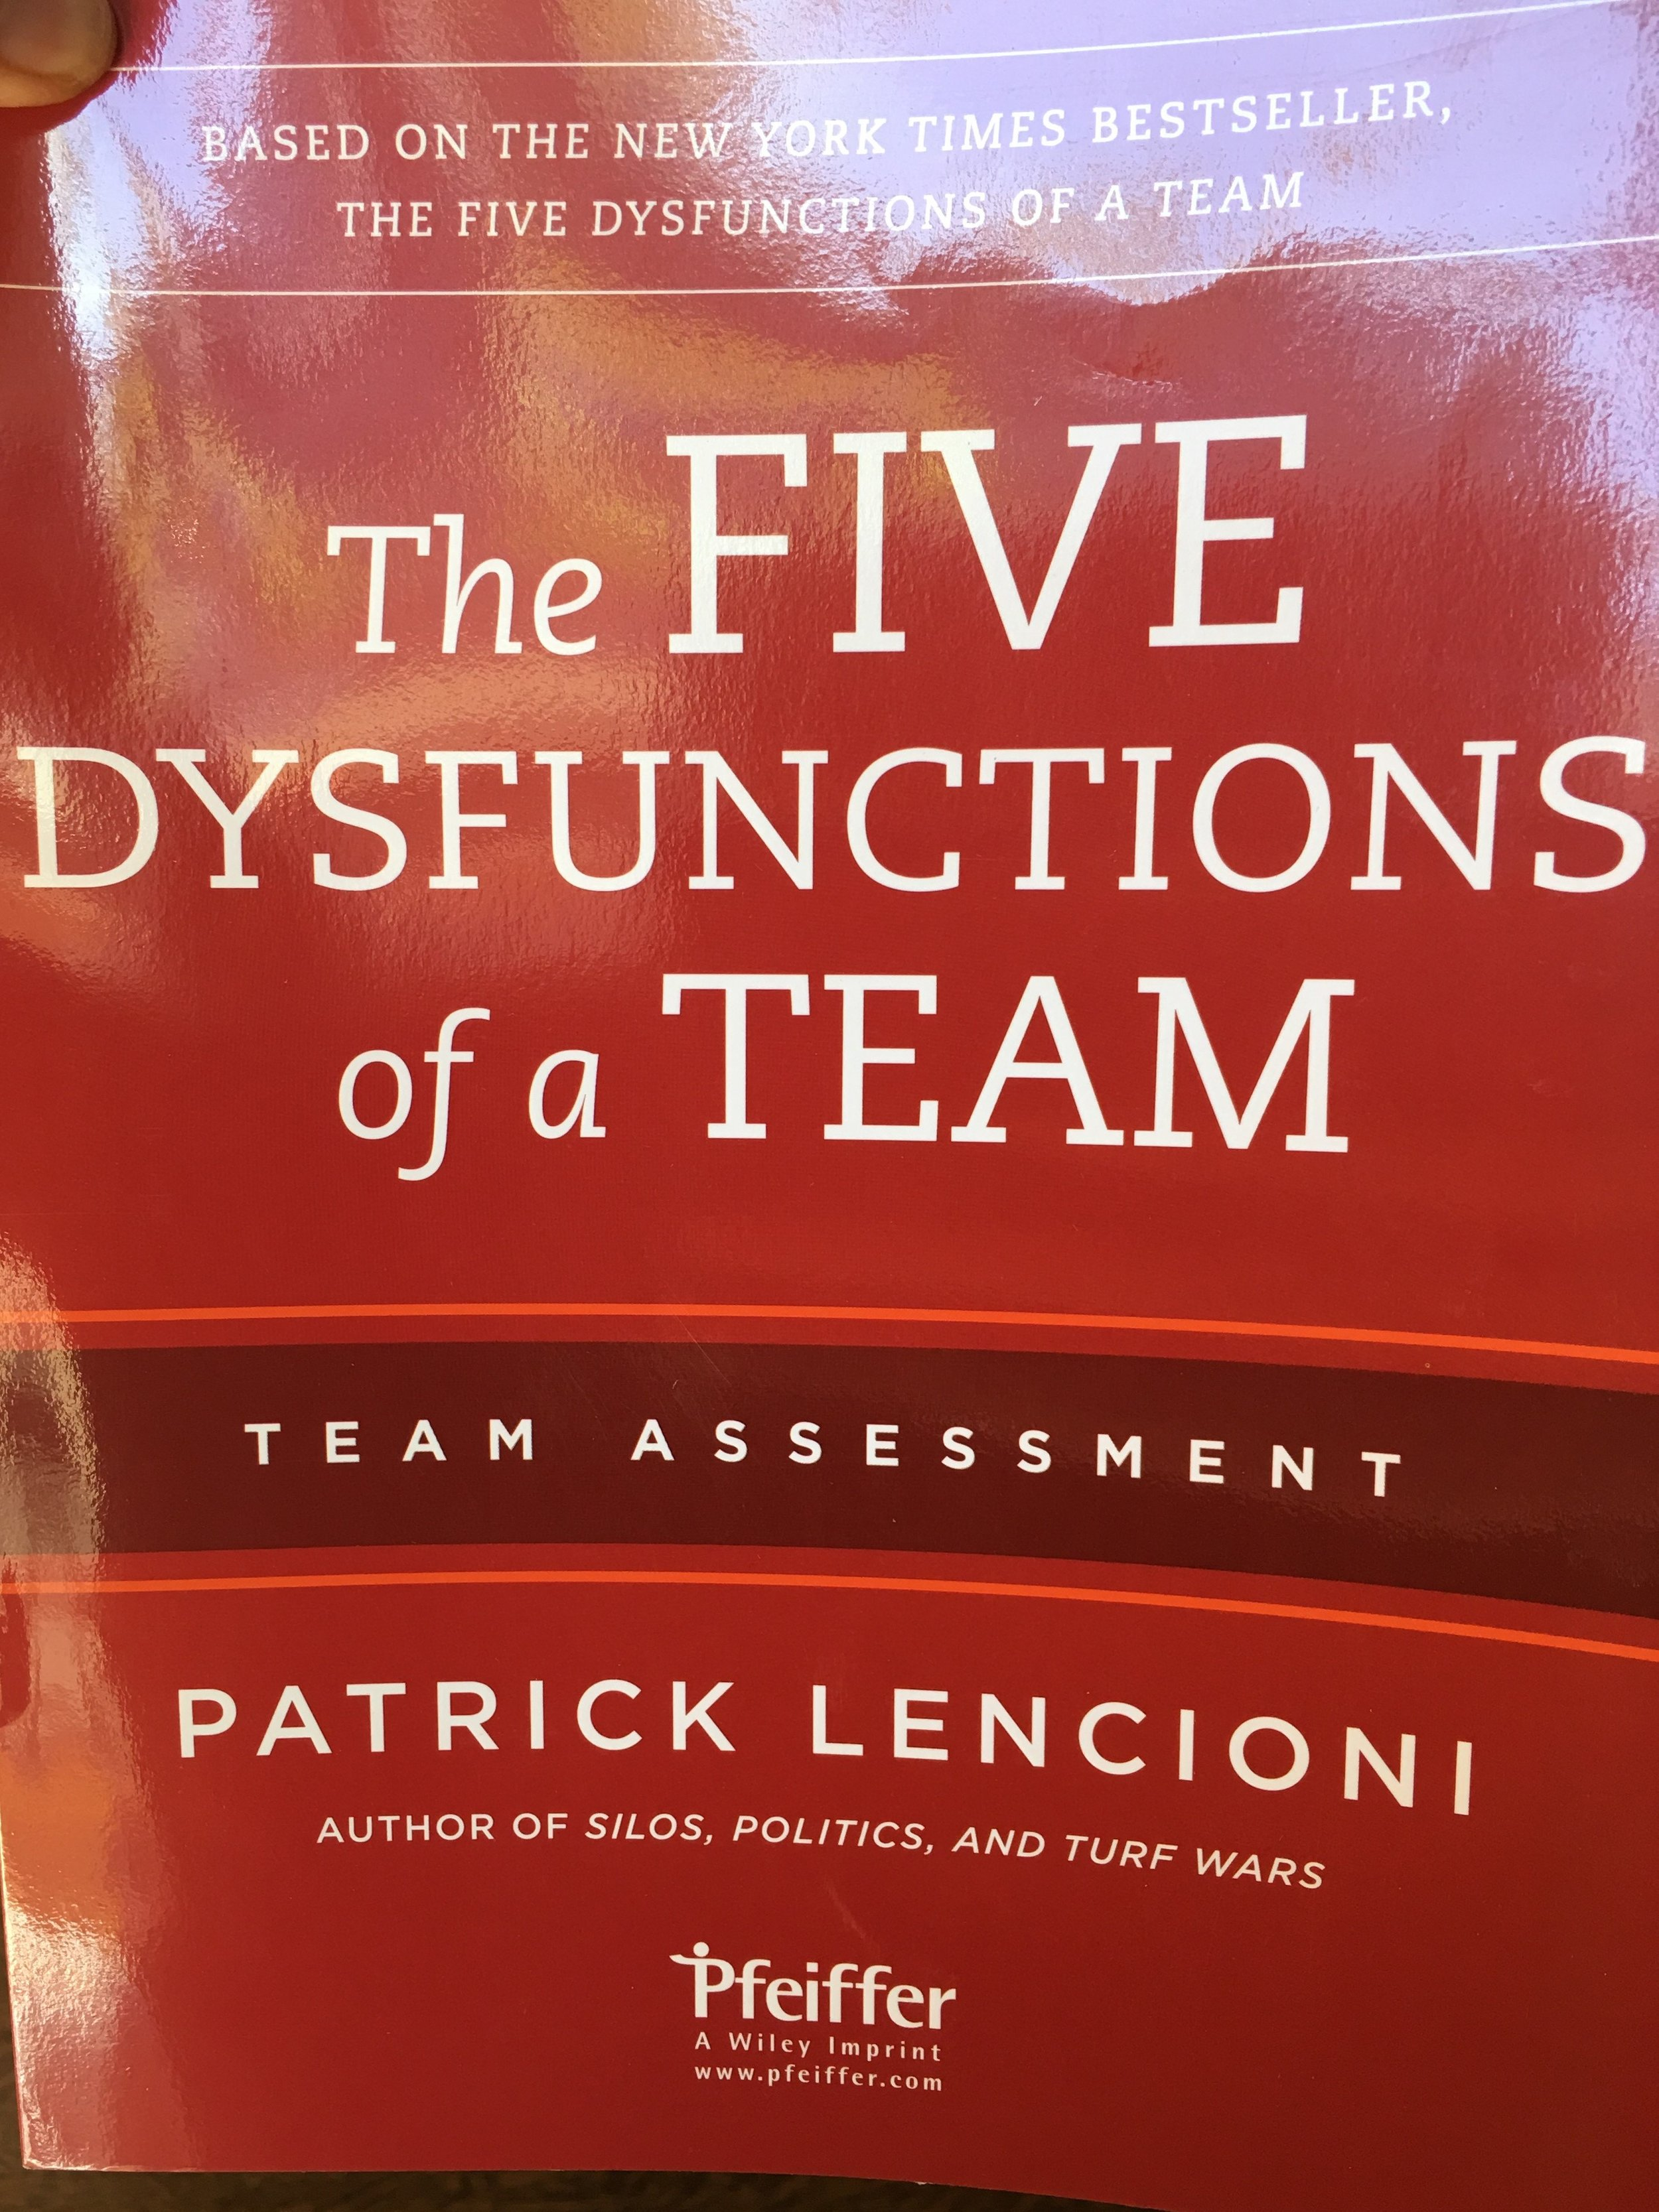 FIVE DYSFUNCTIONS OF A TEAM.jpg